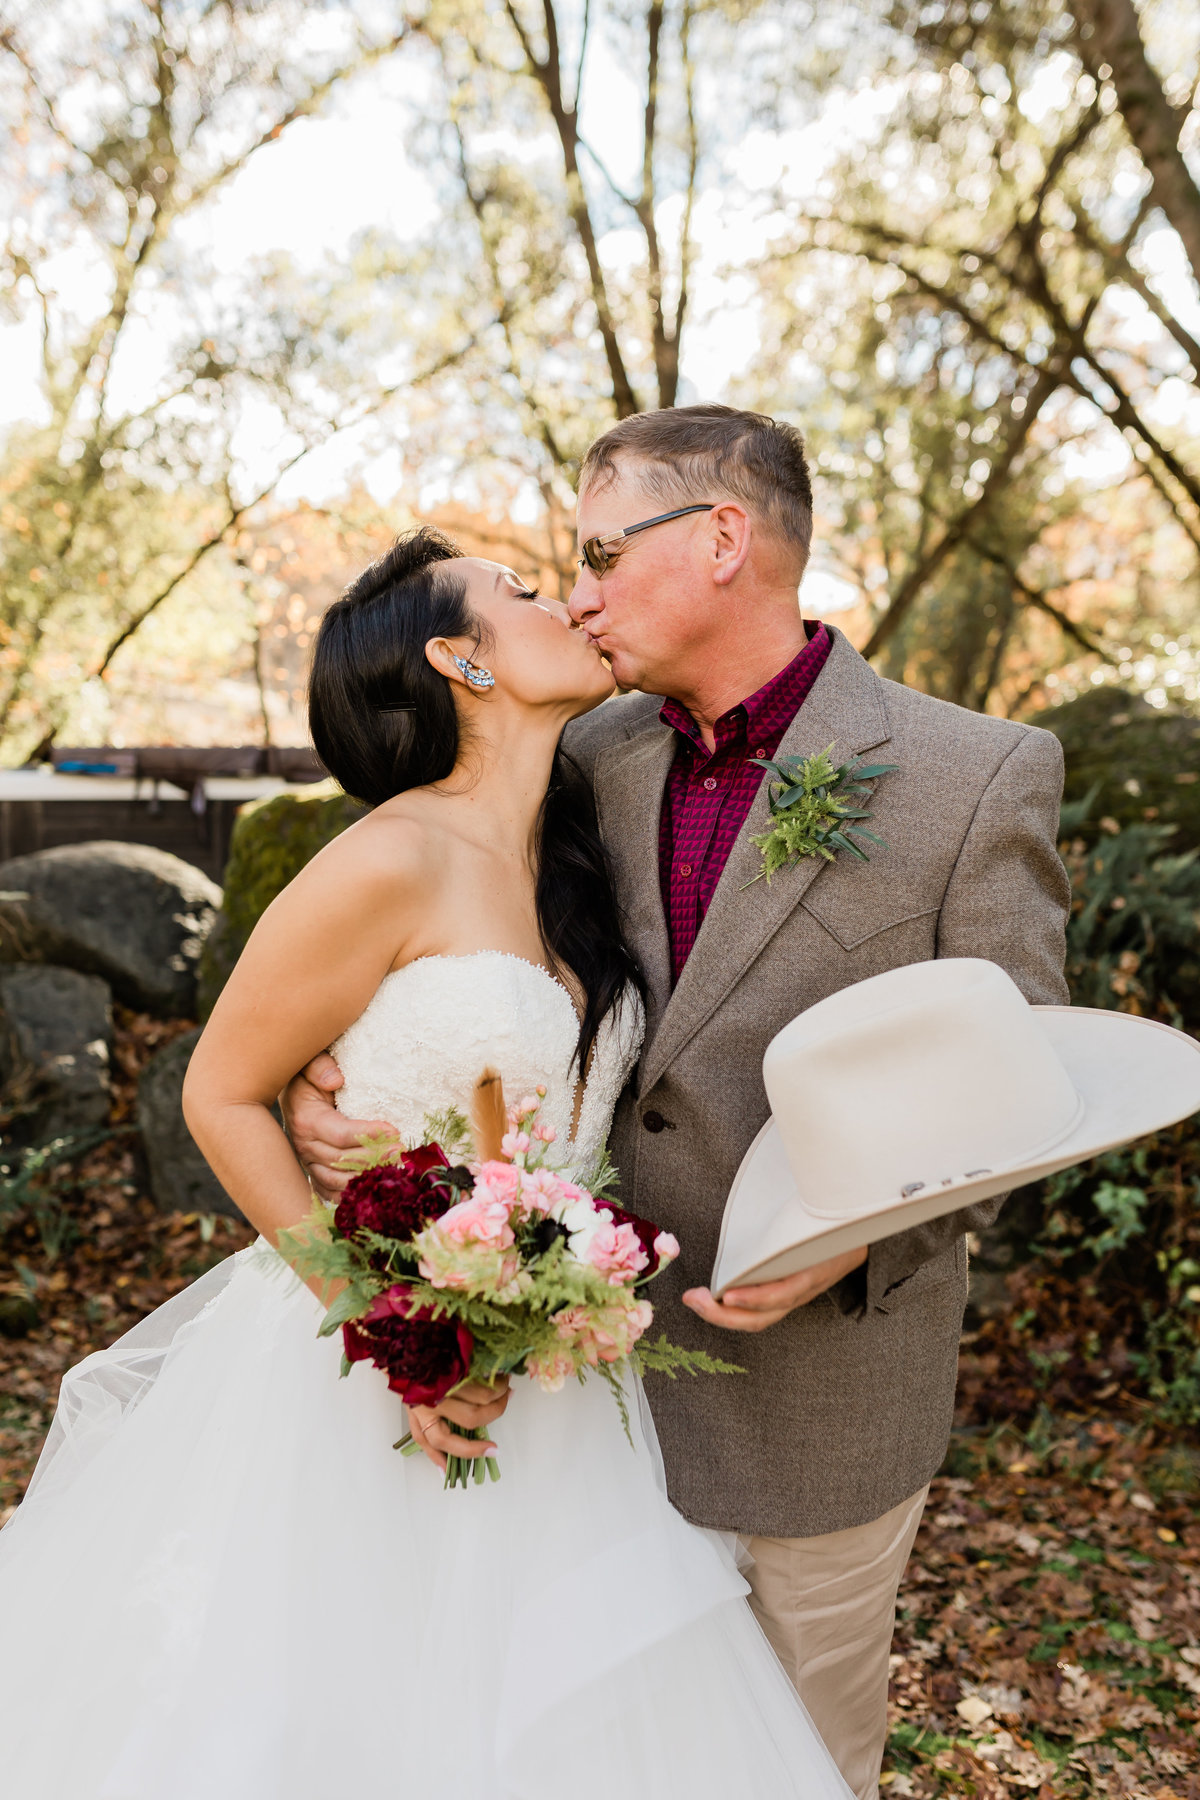 Garret and Gina had their wedding photography done in sonora in the mountains and forest.